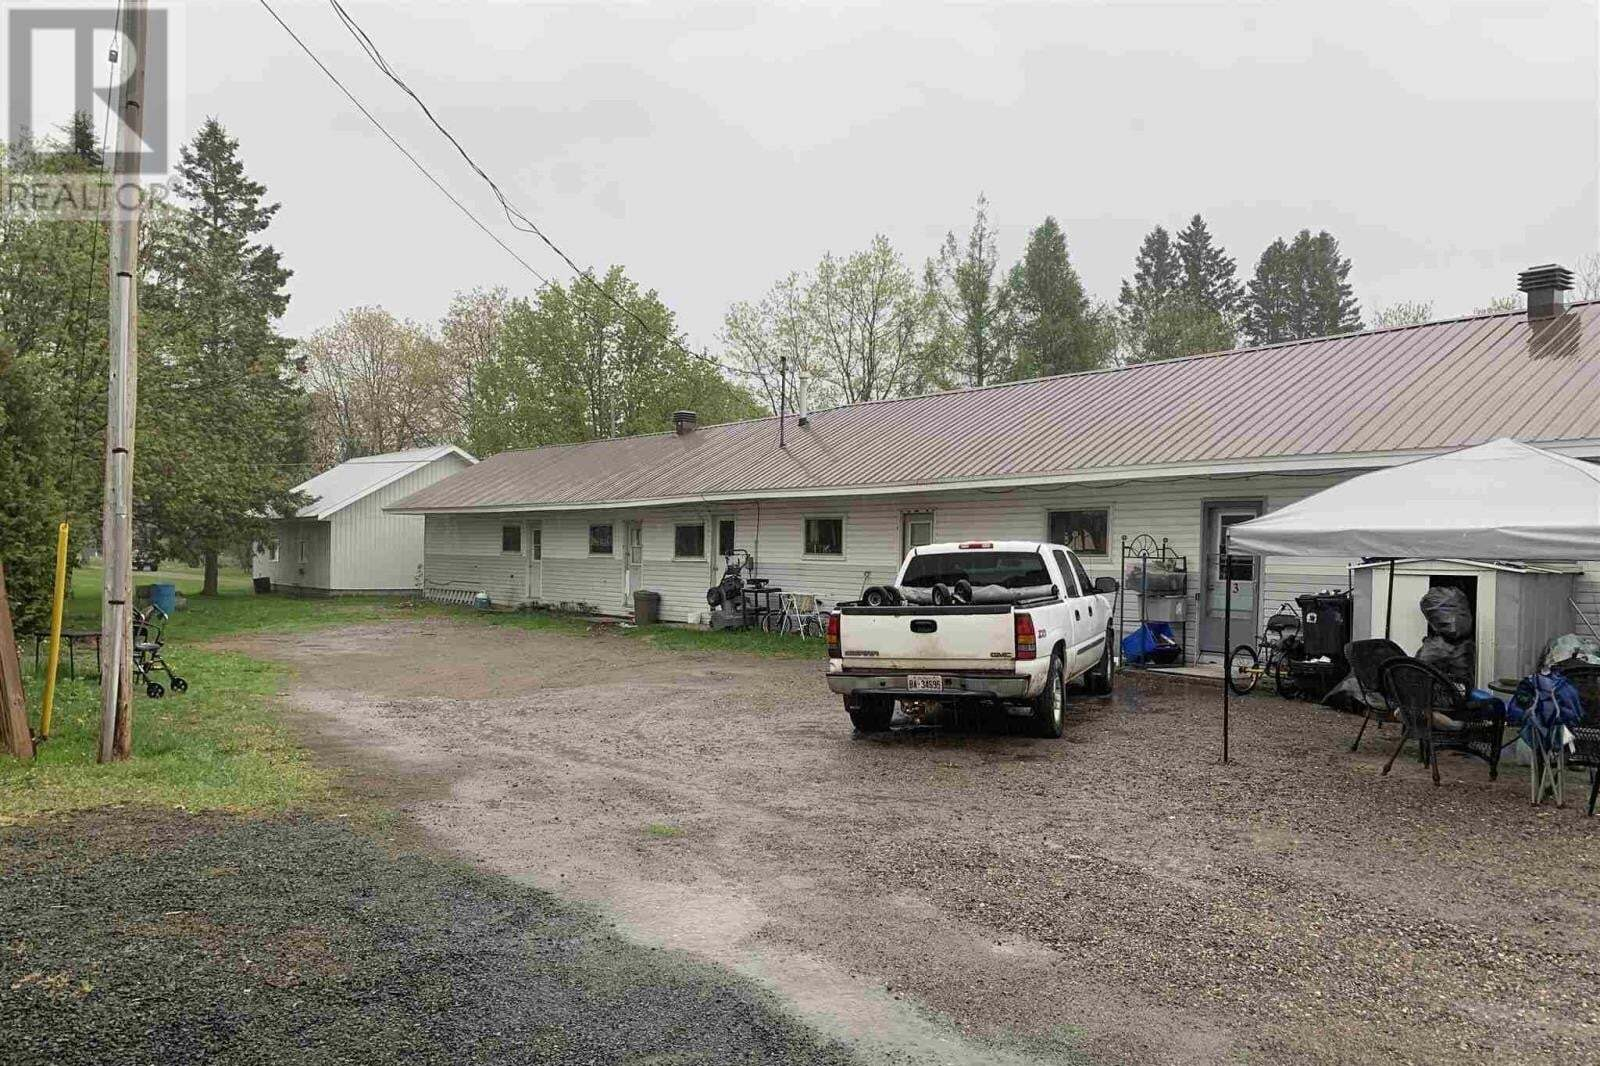 Townhouse for sale at 330 Federation St N Thessalon Ontario - MLS: SM128655